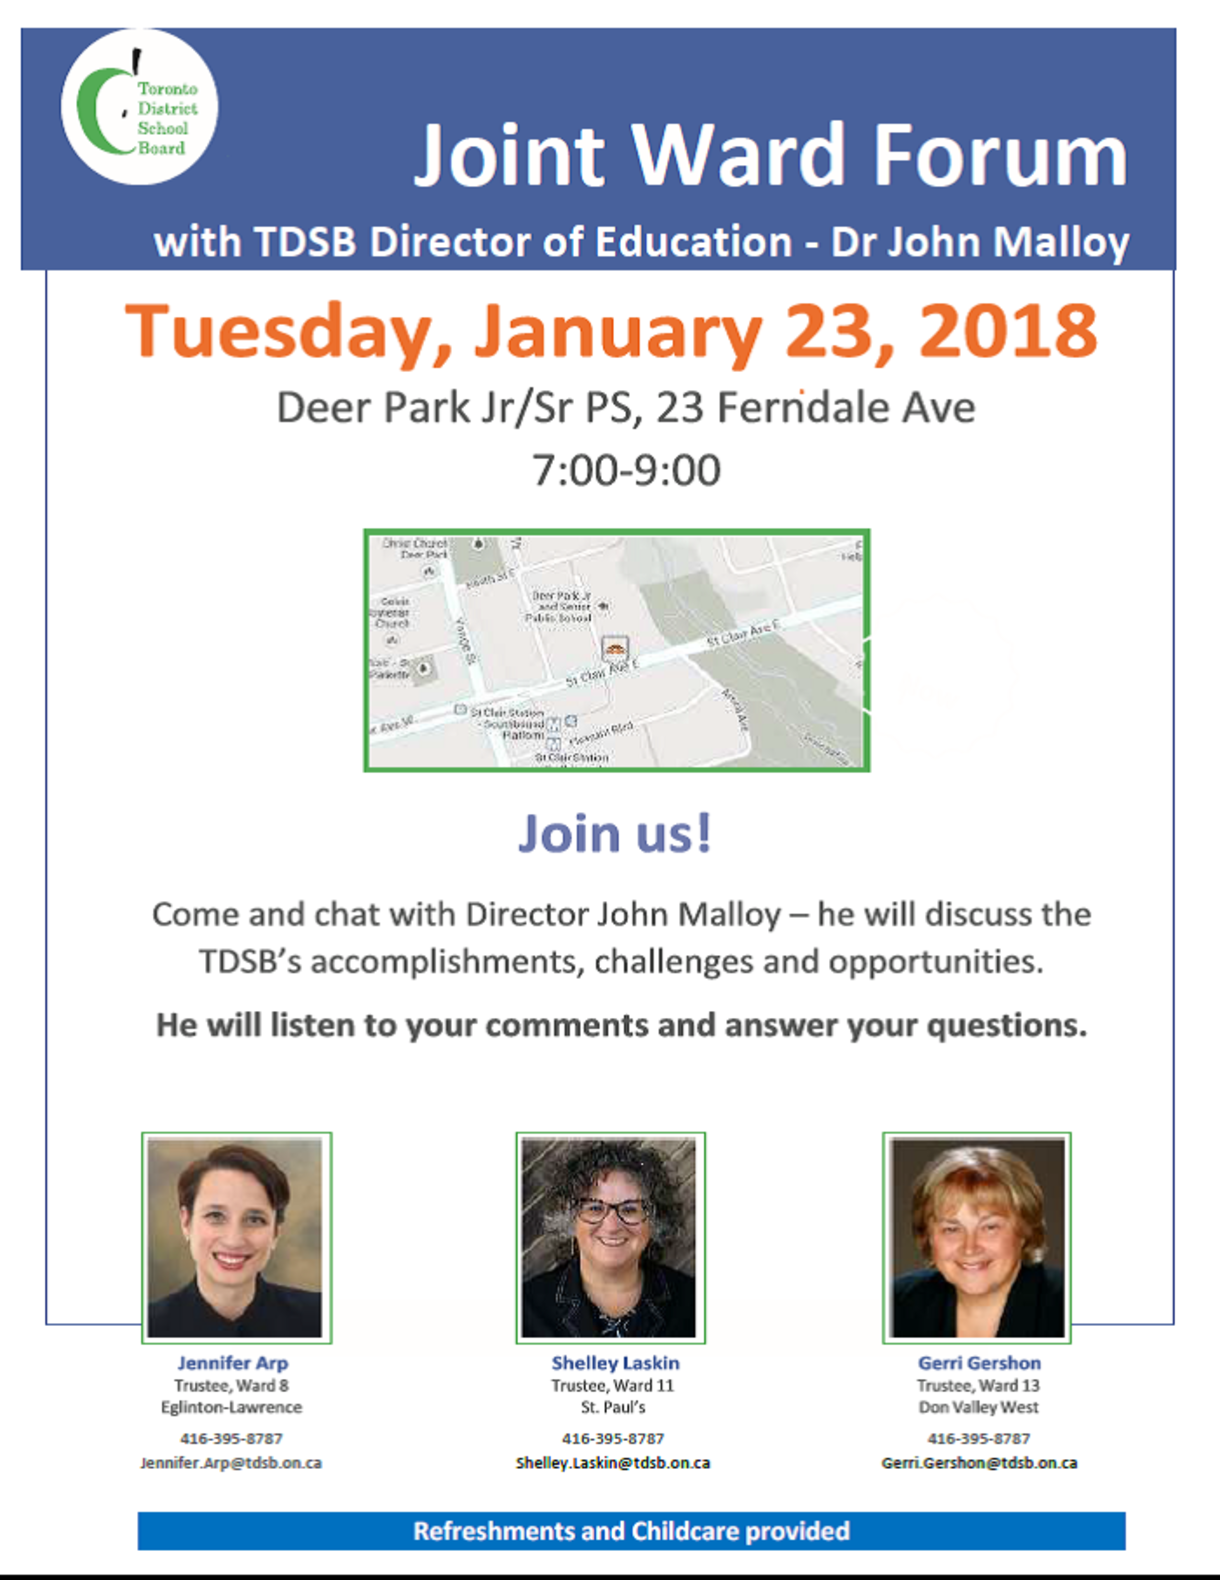 http://allenbyparents.com/blog2/wp-content/uploads/Joint_Ward_Forum_Jan_23_2018.png